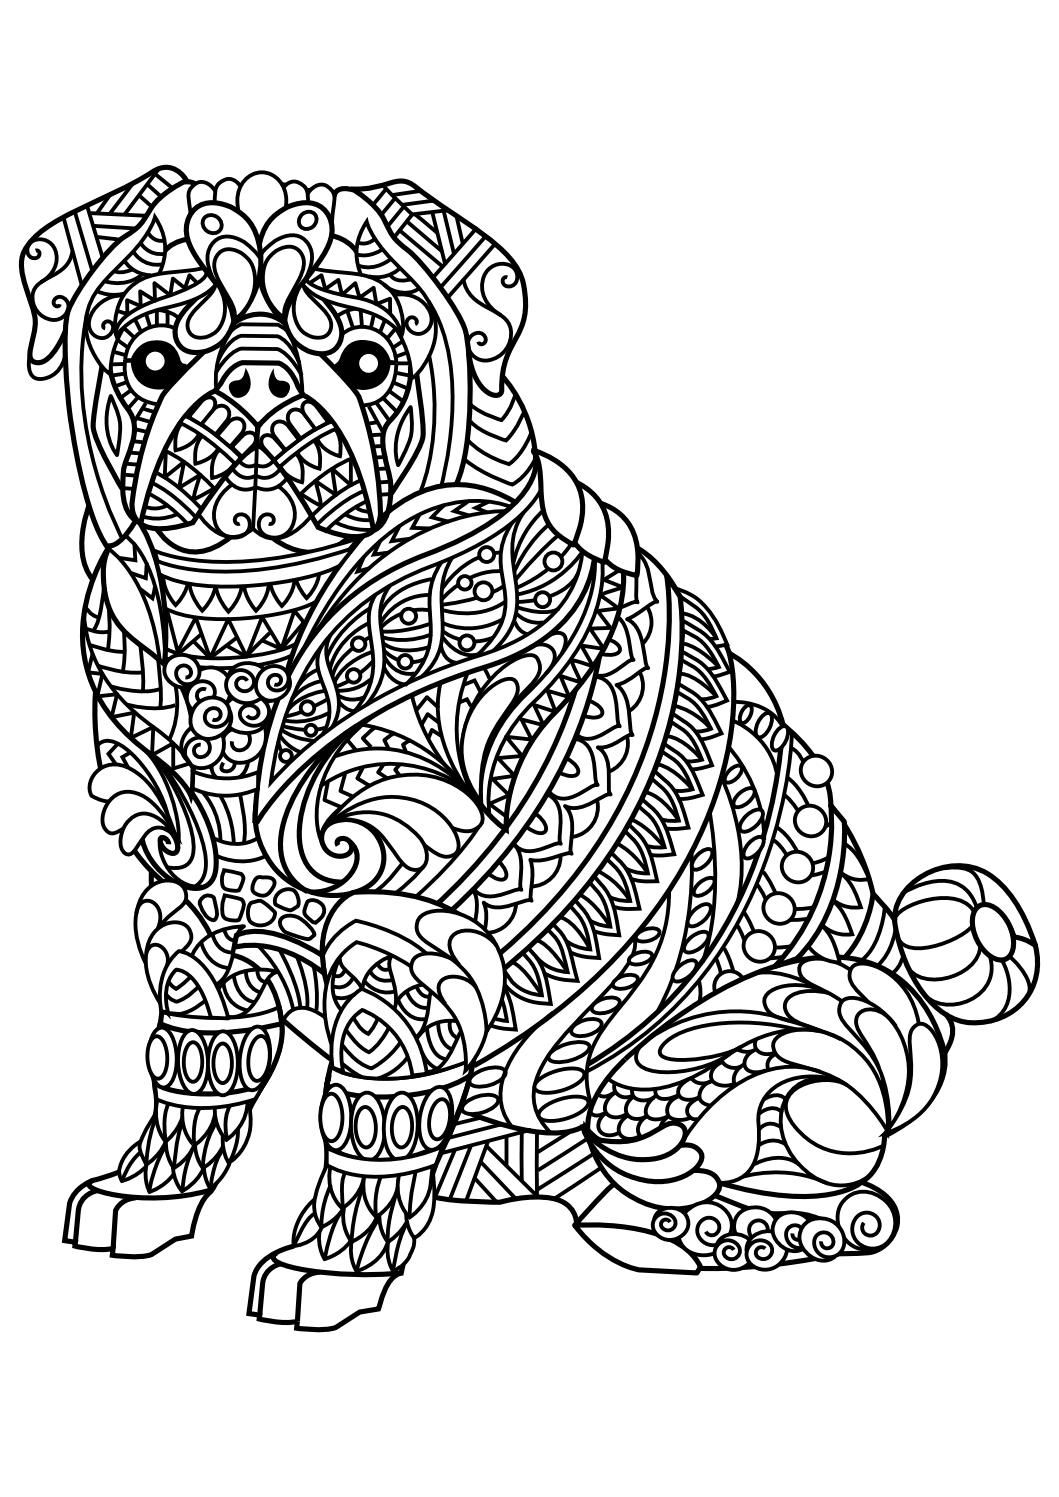 Coloring Pages Of Pugs Printable Horse Coloring Pages Dog